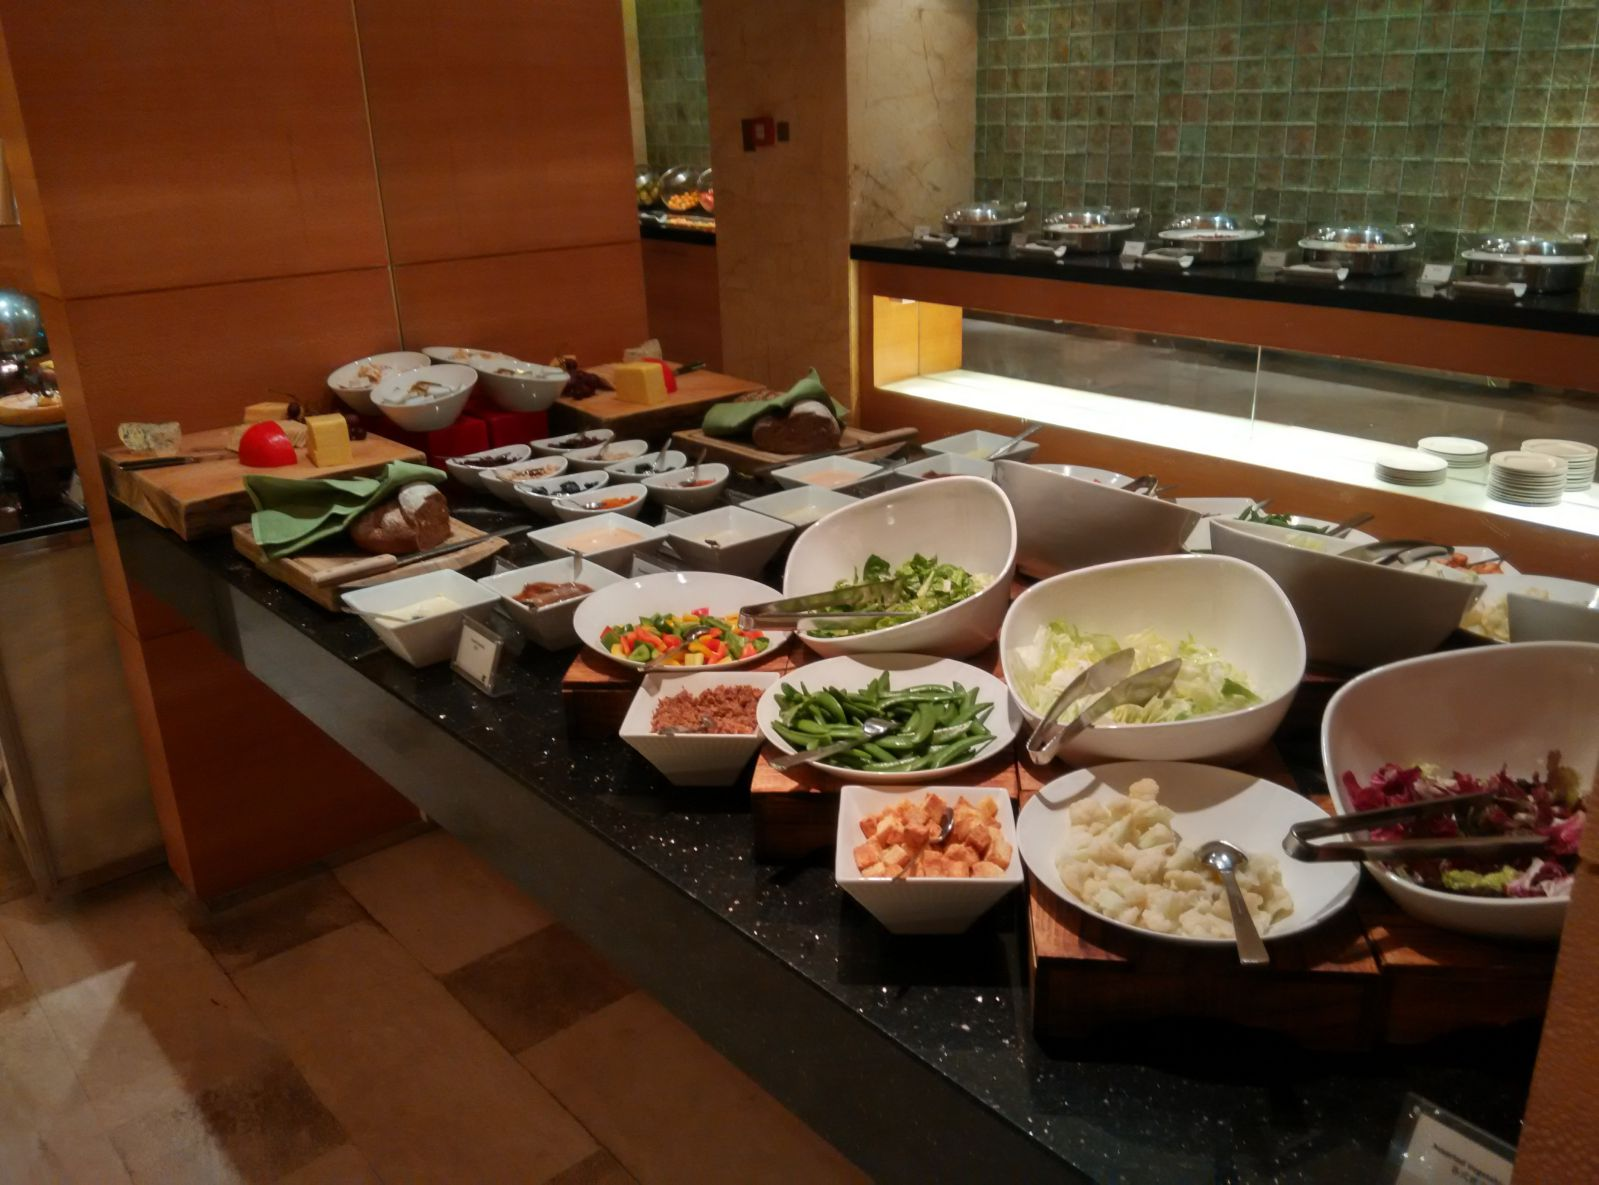 shenzhen-jw-marriott-executive-lounge-salad